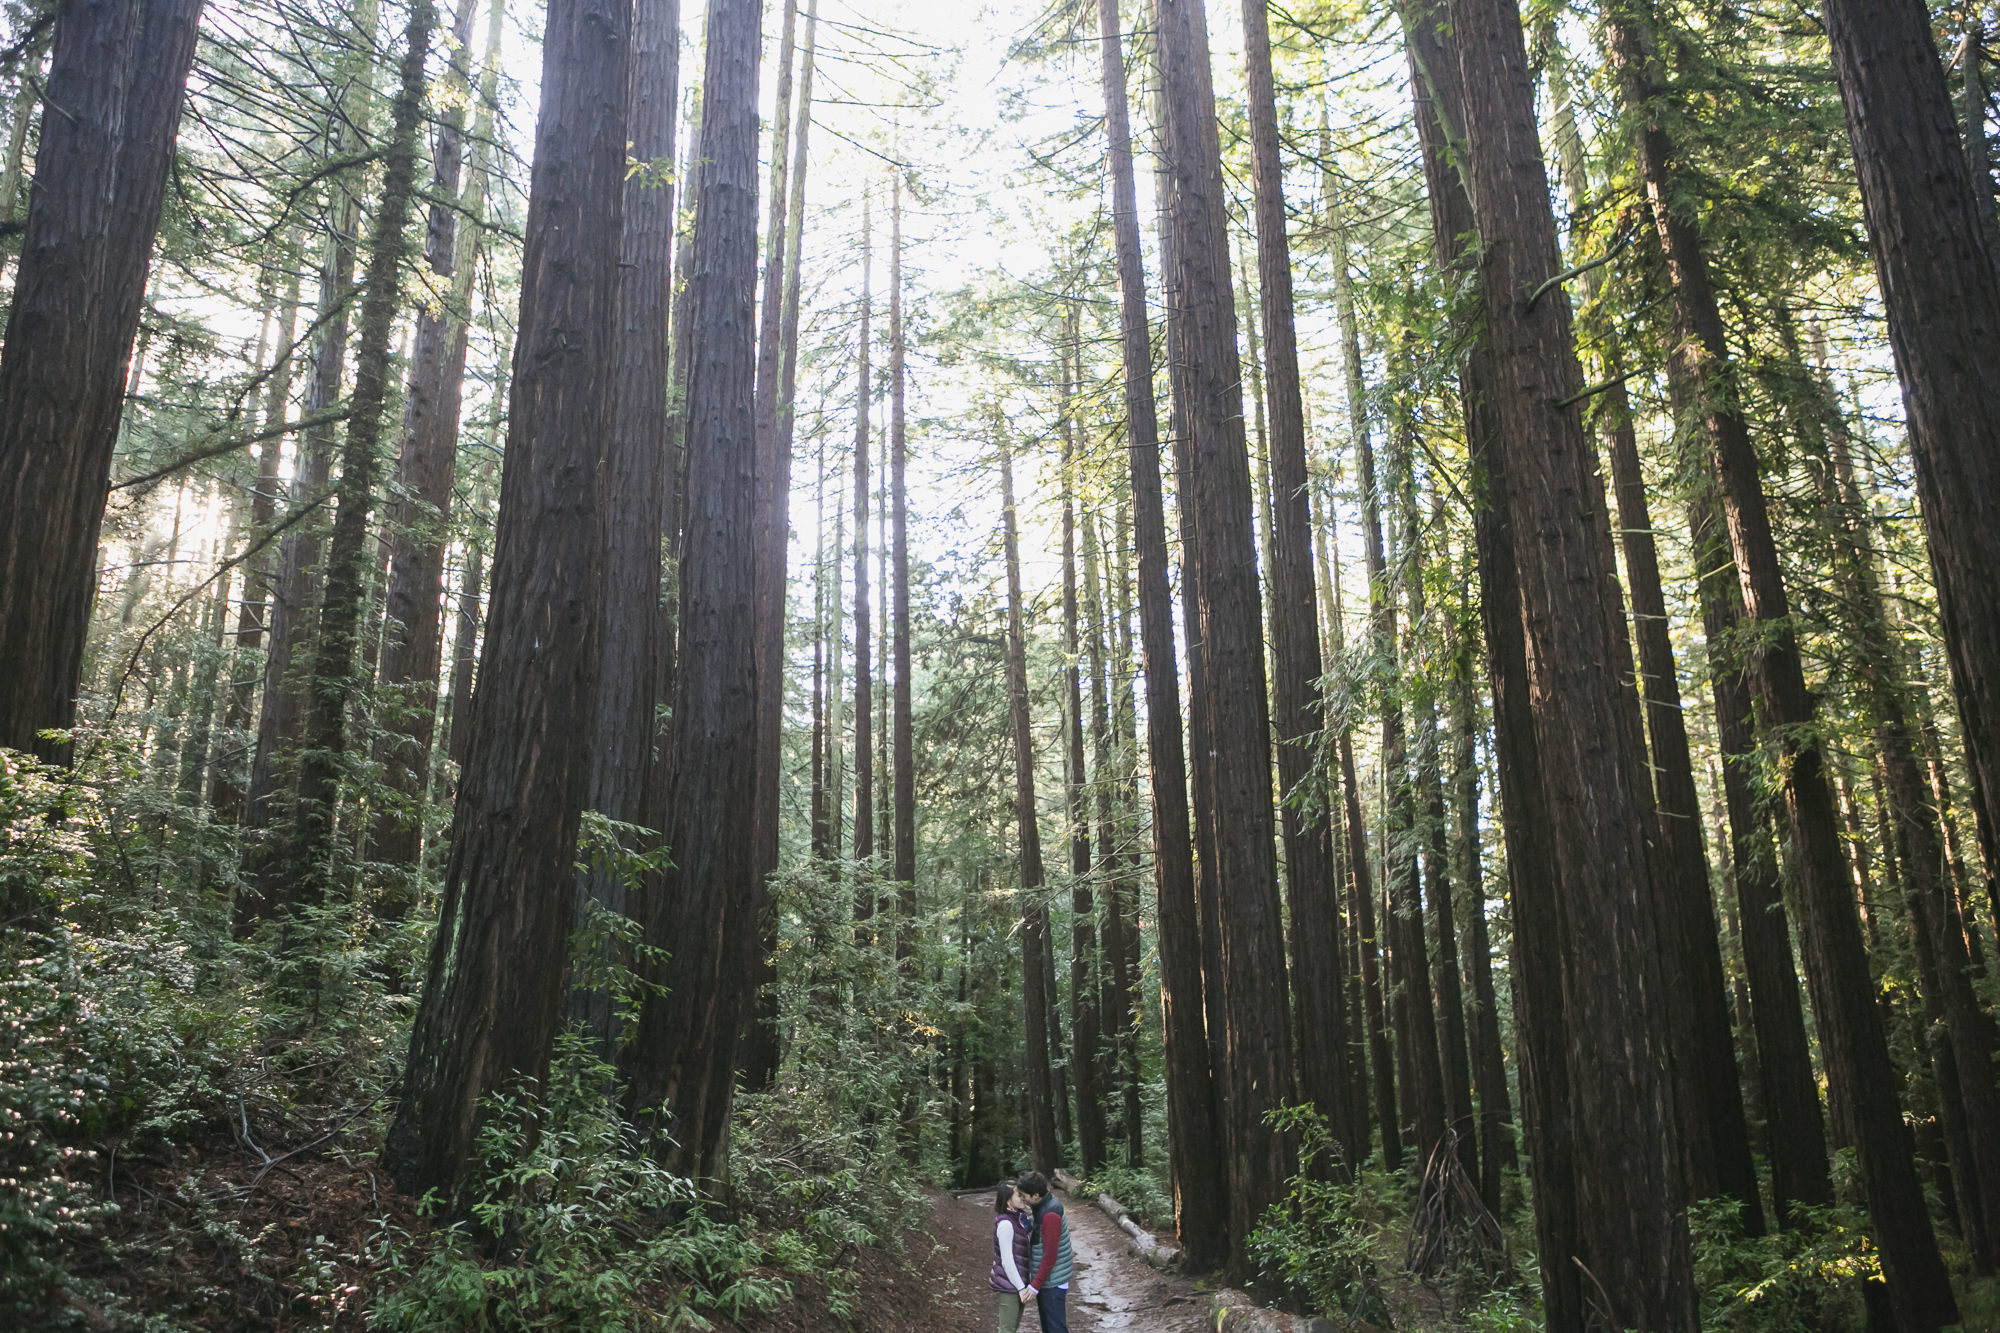 Engaged couple in redwood forest in the Oakland hills